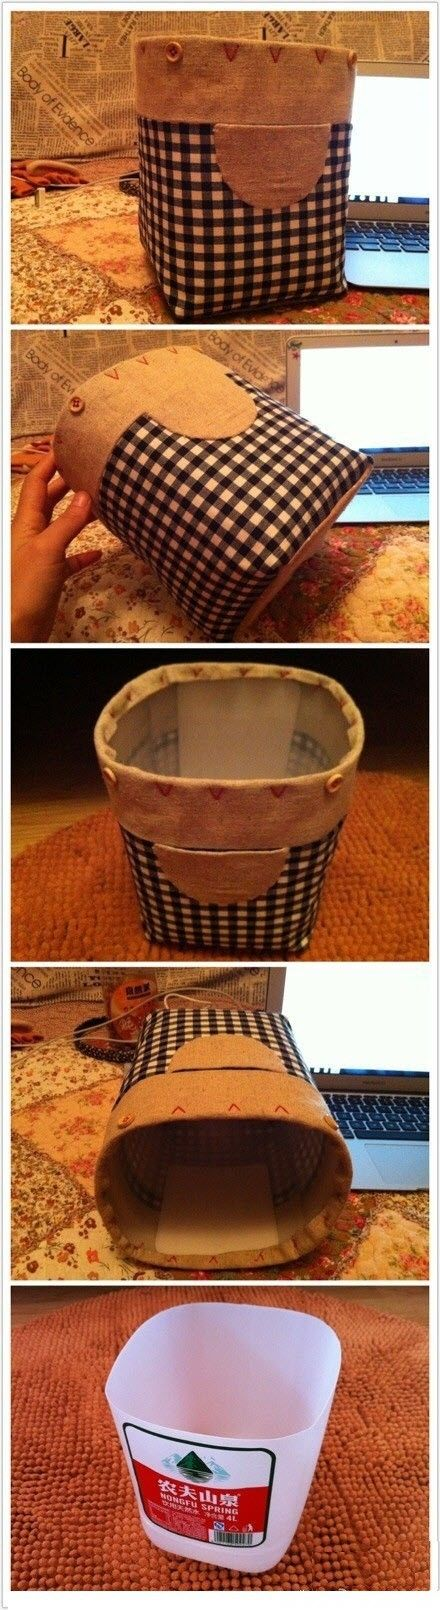 Turn an empty and clean milk carton into a basket for storage or gift giving.  I'd use a different type of print.